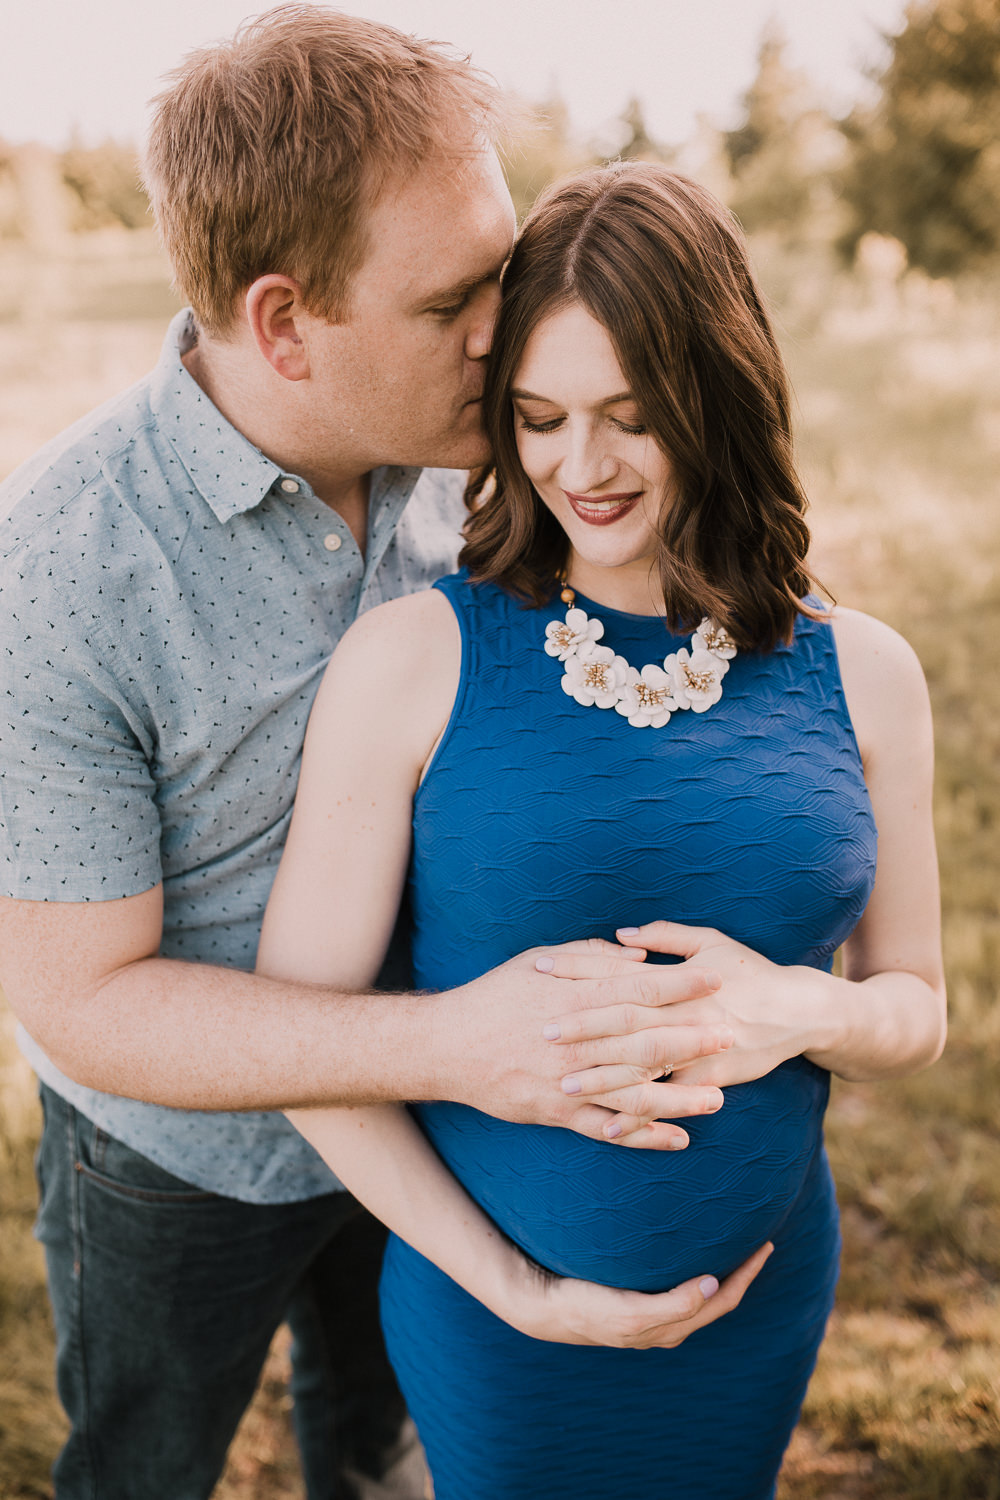 husband embraces pregnant wife in blue dress and kisses her on cheek at sunset - Barrie Lifestyle Photos